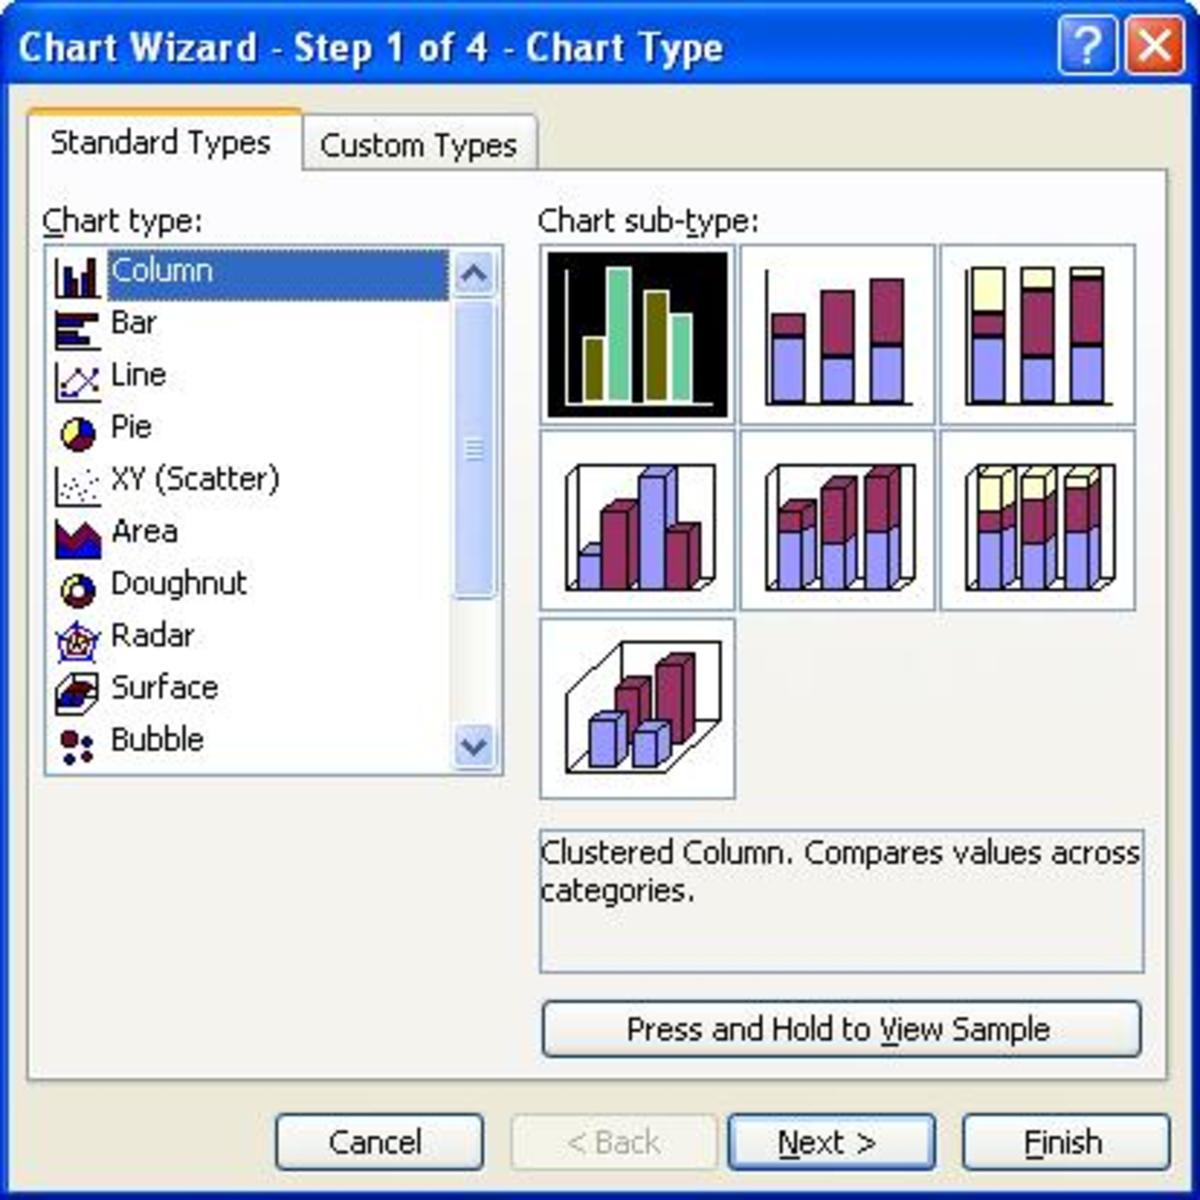 The chart wizard